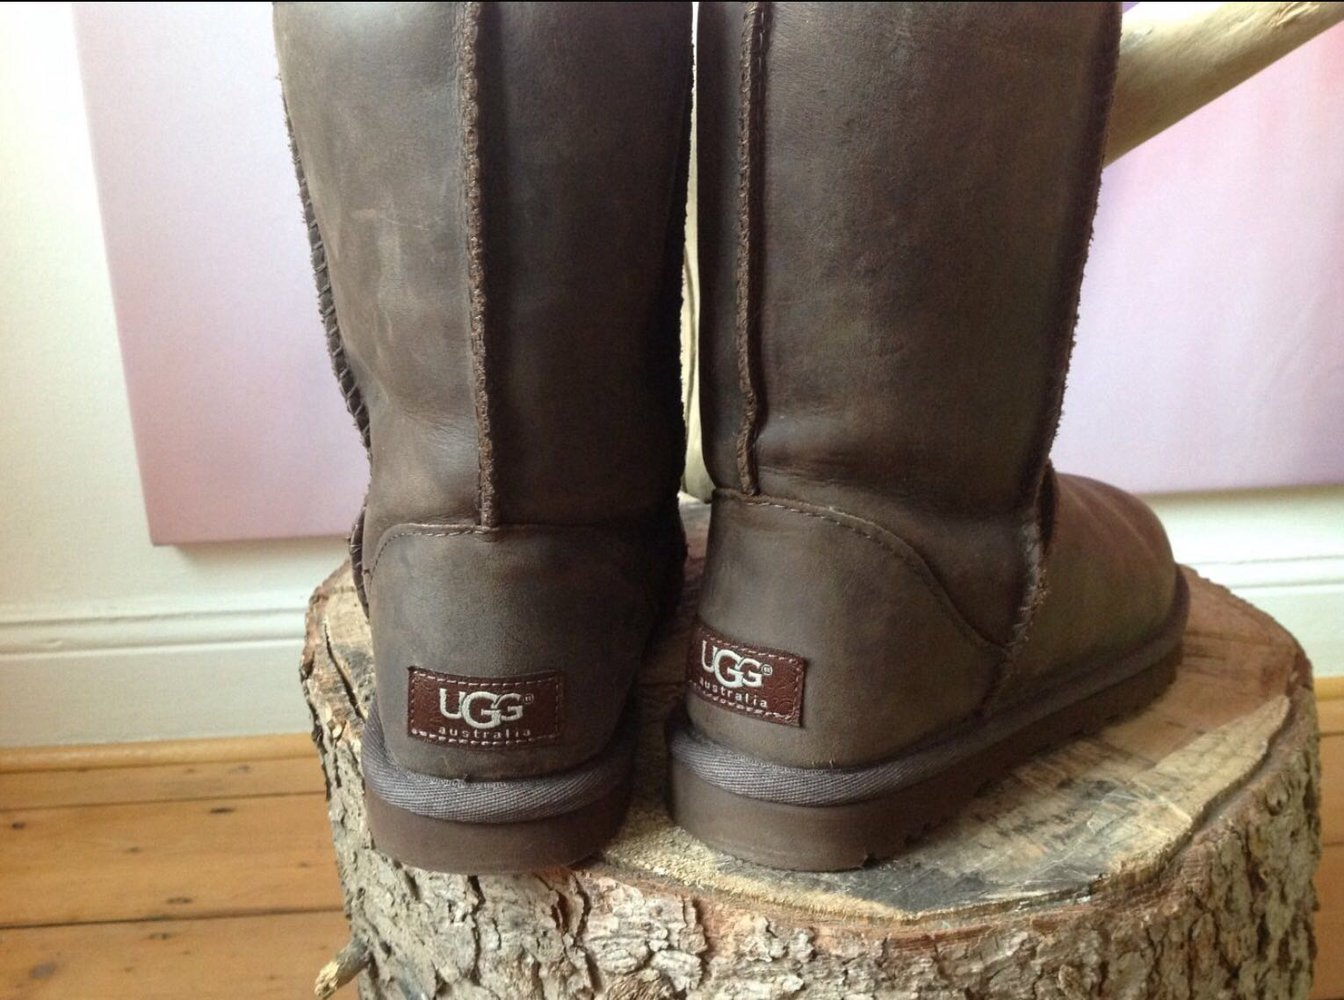 ugg australia ugg boots gr 37 lammfellboots braun leder. Black Bedroom Furniture Sets. Home Design Ideas